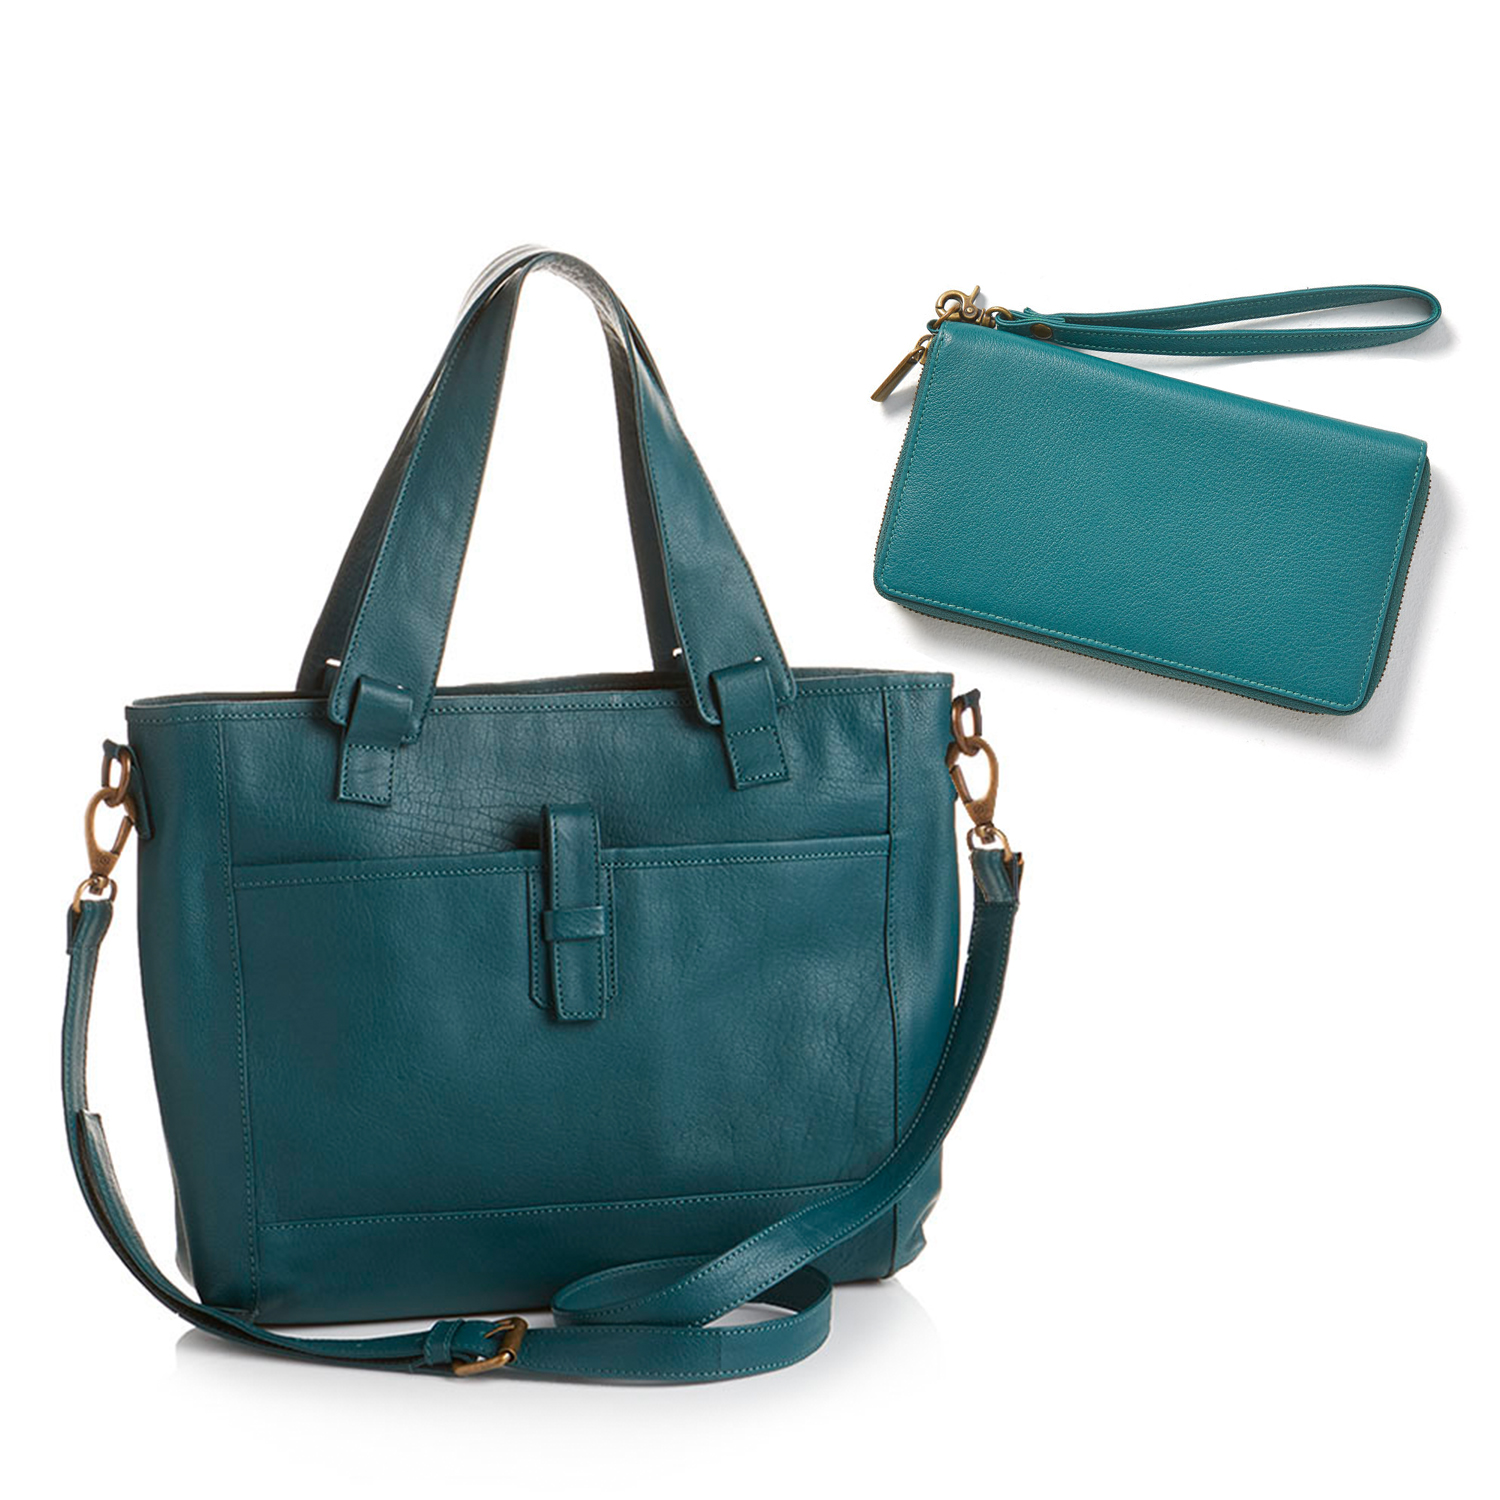 Teal All-for-One Leather Bag & Wallet Offer